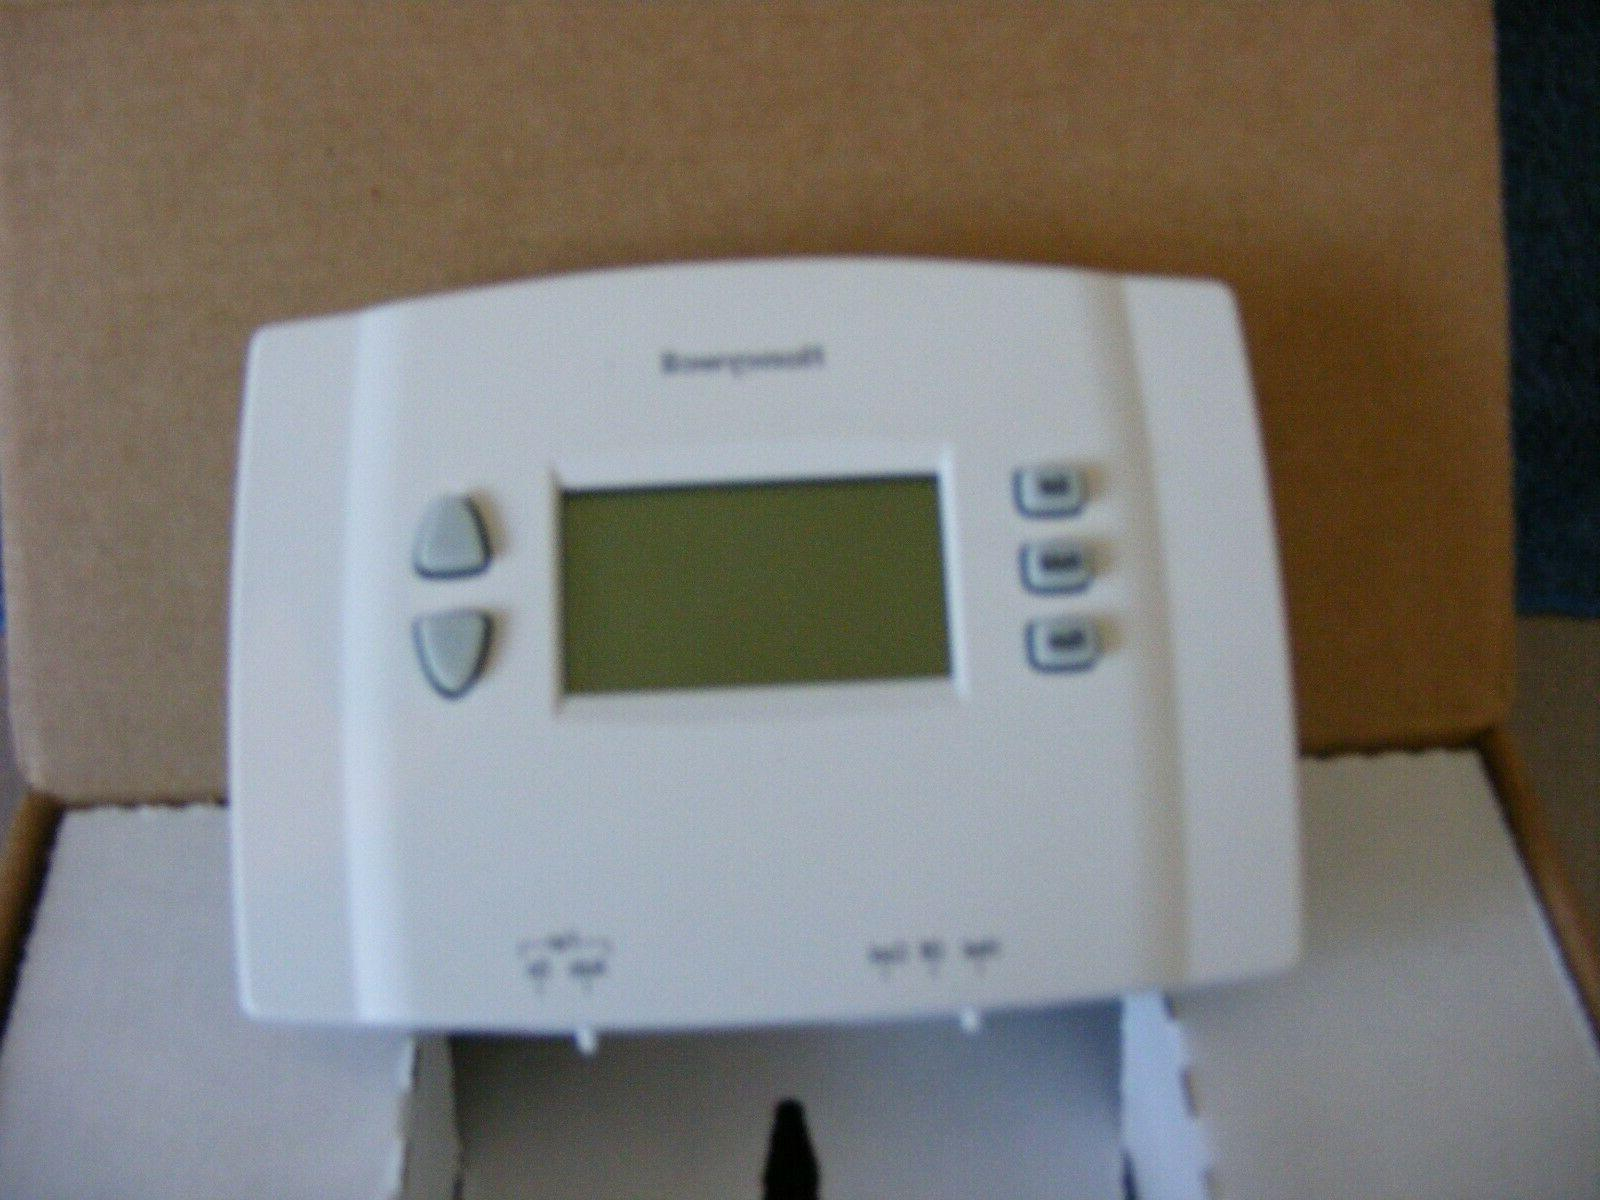 Honeywell RTH221B1021/E1 Week Thermostat